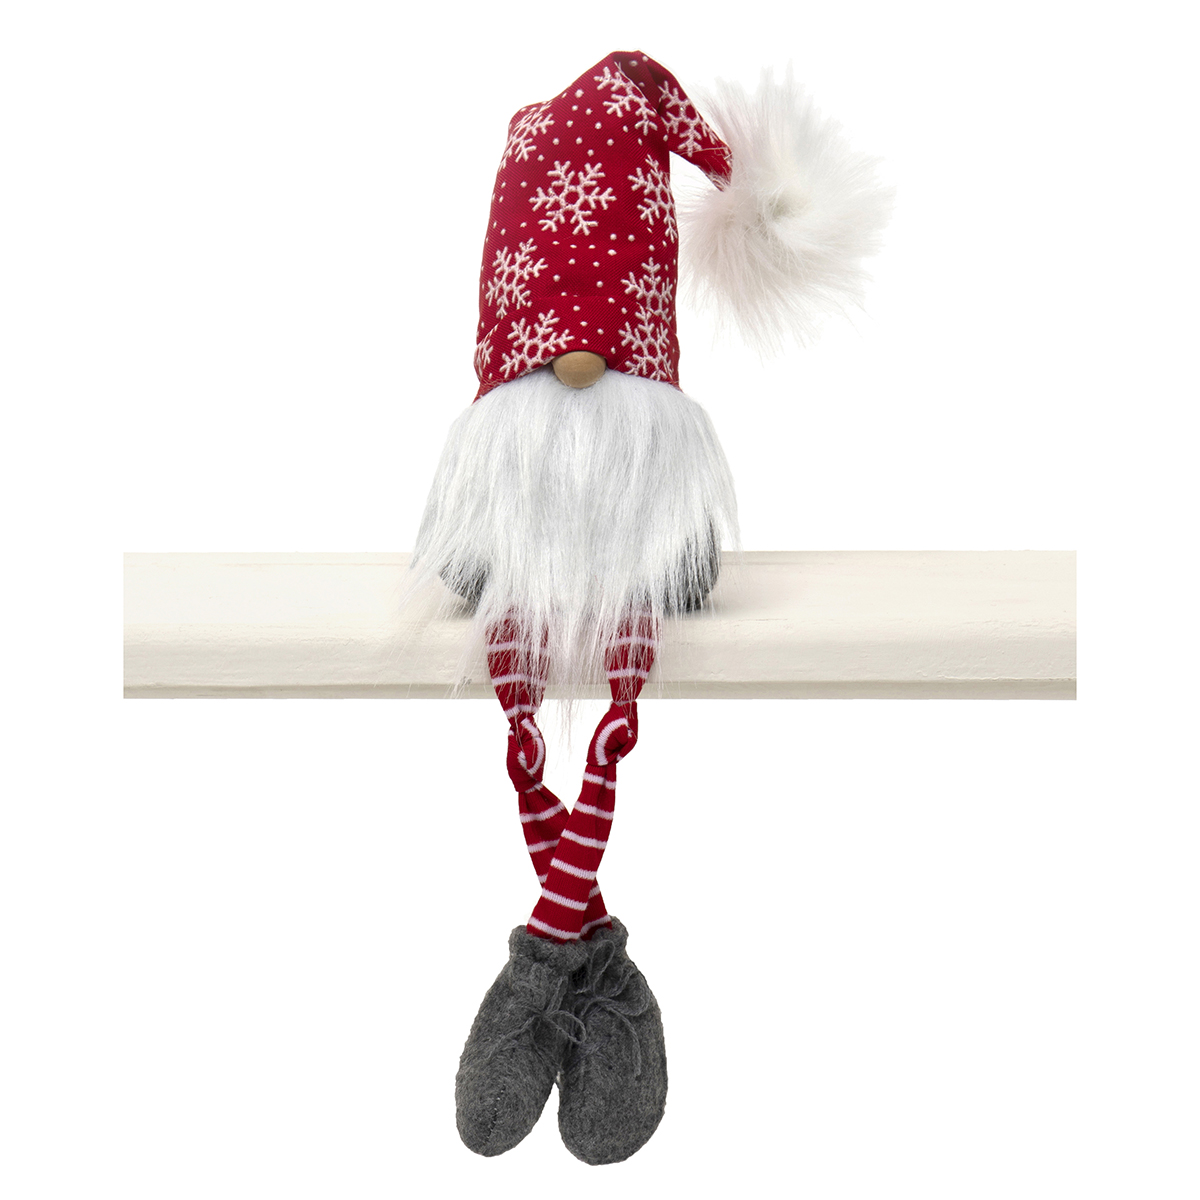 RED/WHITE XMAS GNOME WITH SNOWFLAKE